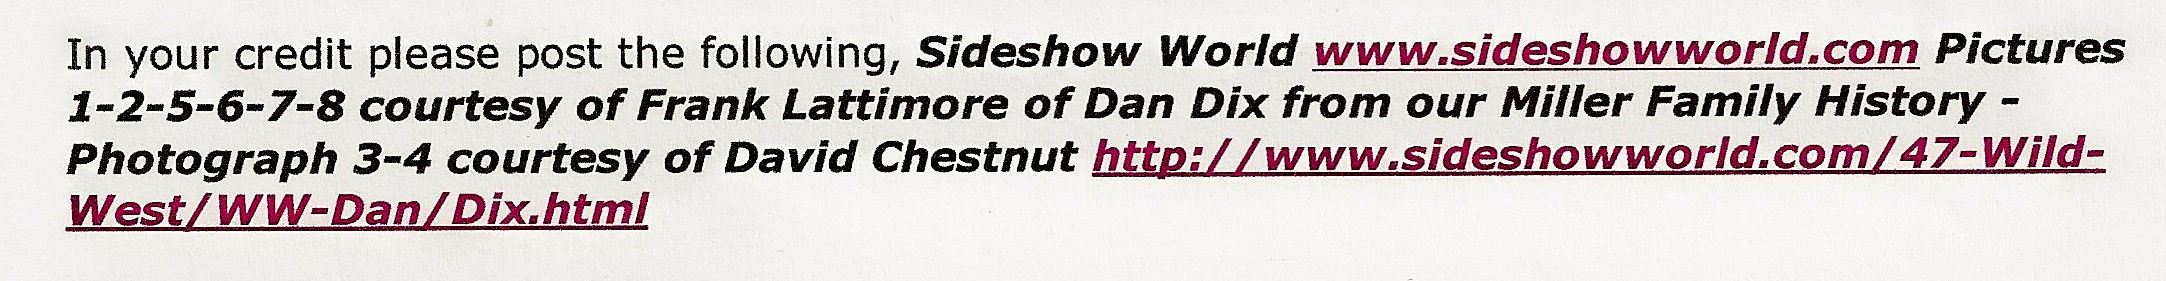 sideshow world Dan Dix